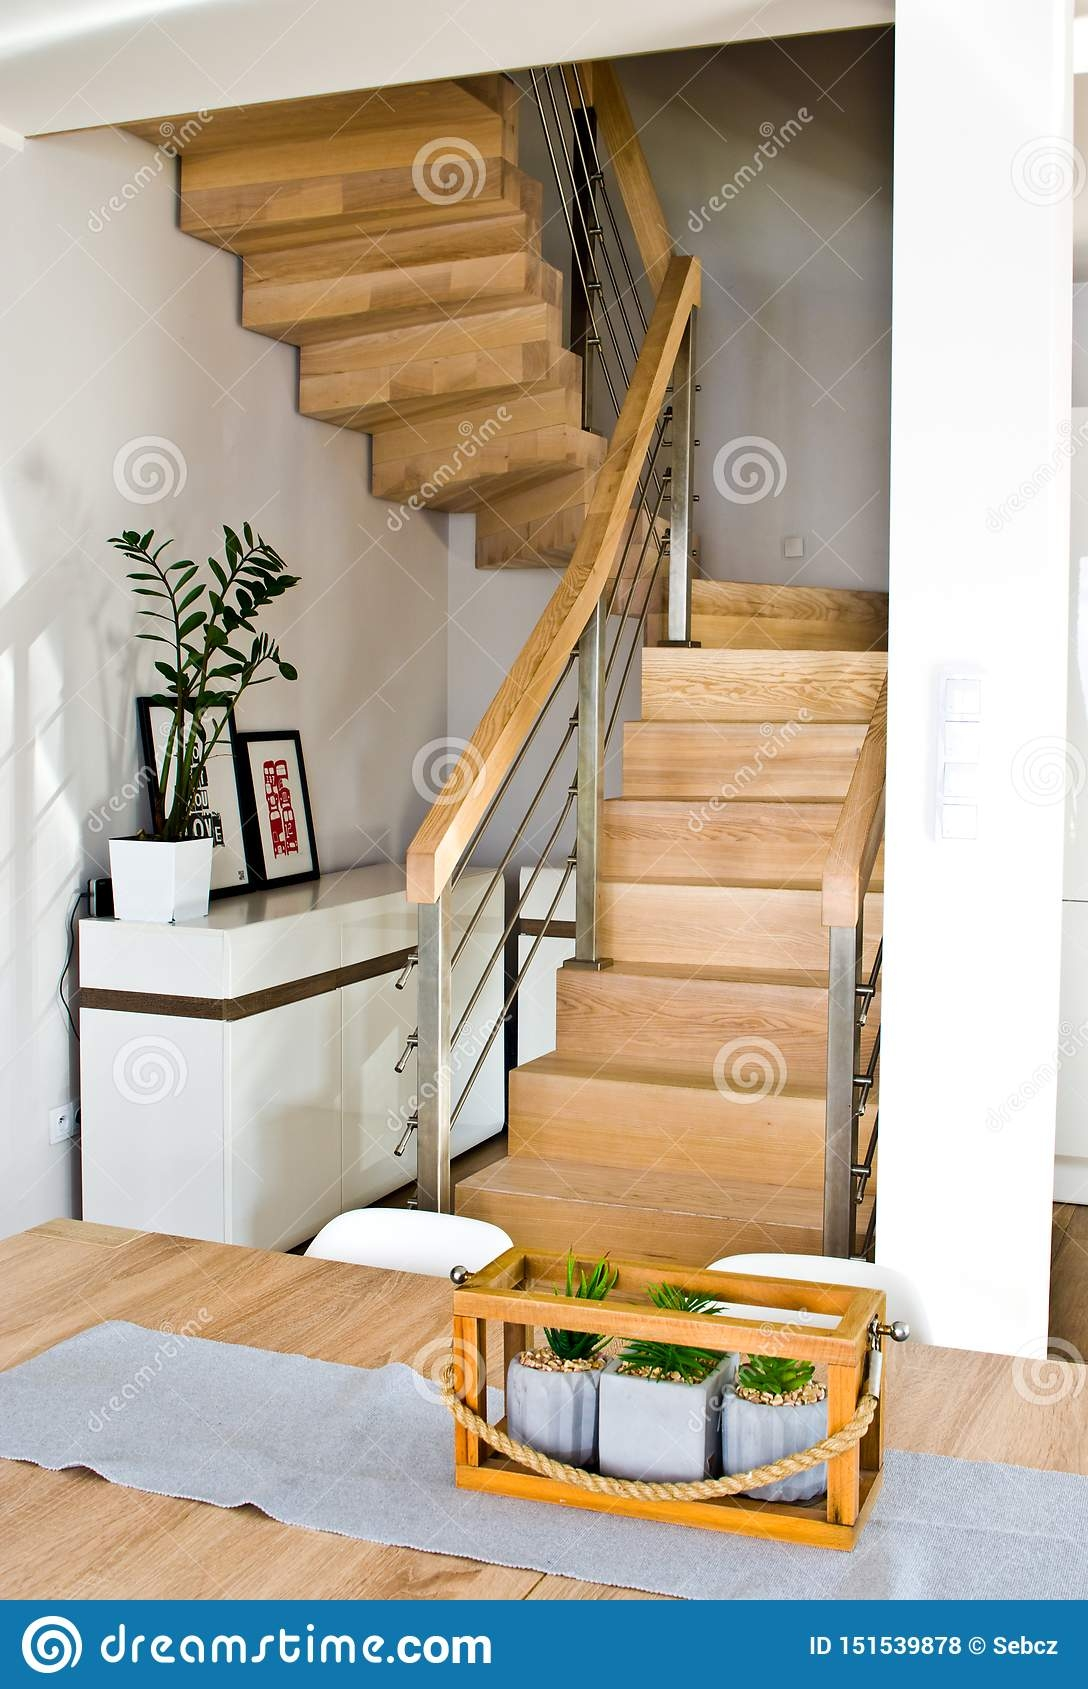 Modern Home Living Room Area With Wooden Stairs Stock Photo | Staircase Inside Living Room | Kitchen Stair | Apartment | Inside Lounge | Staircase Tv | Private Home